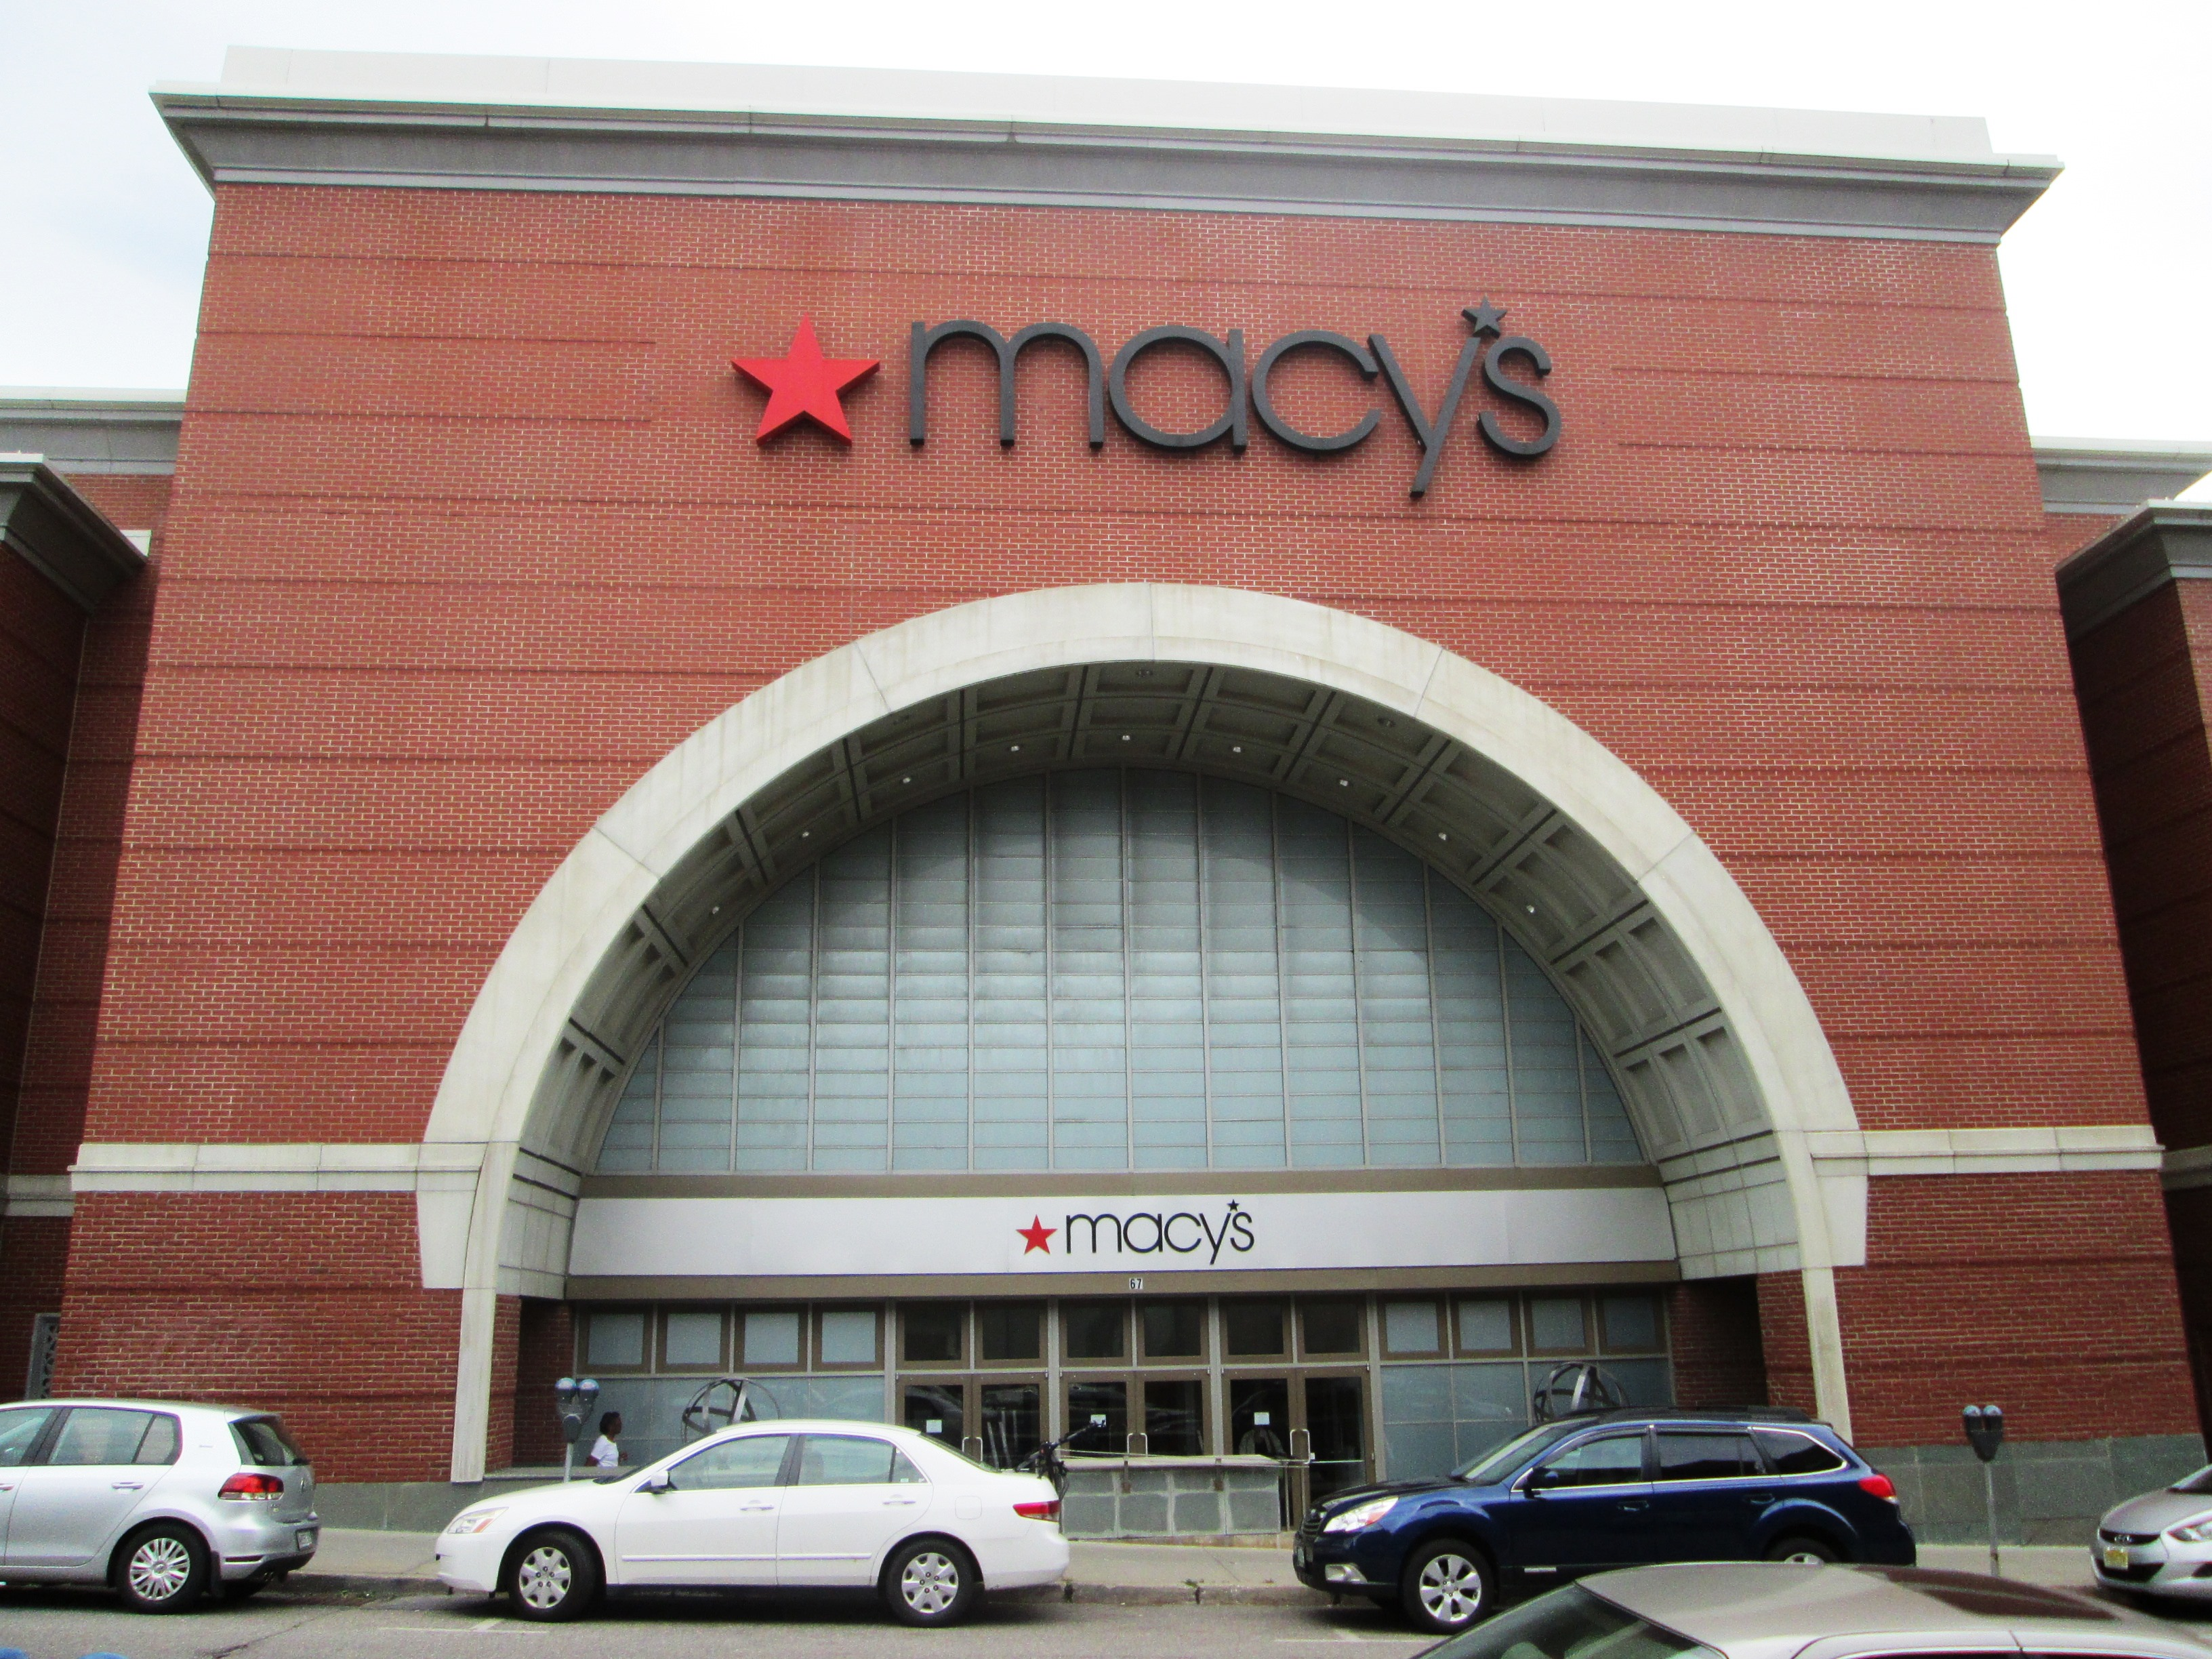 Macy's Closing 100 Stores, Many Employees to Be Affected